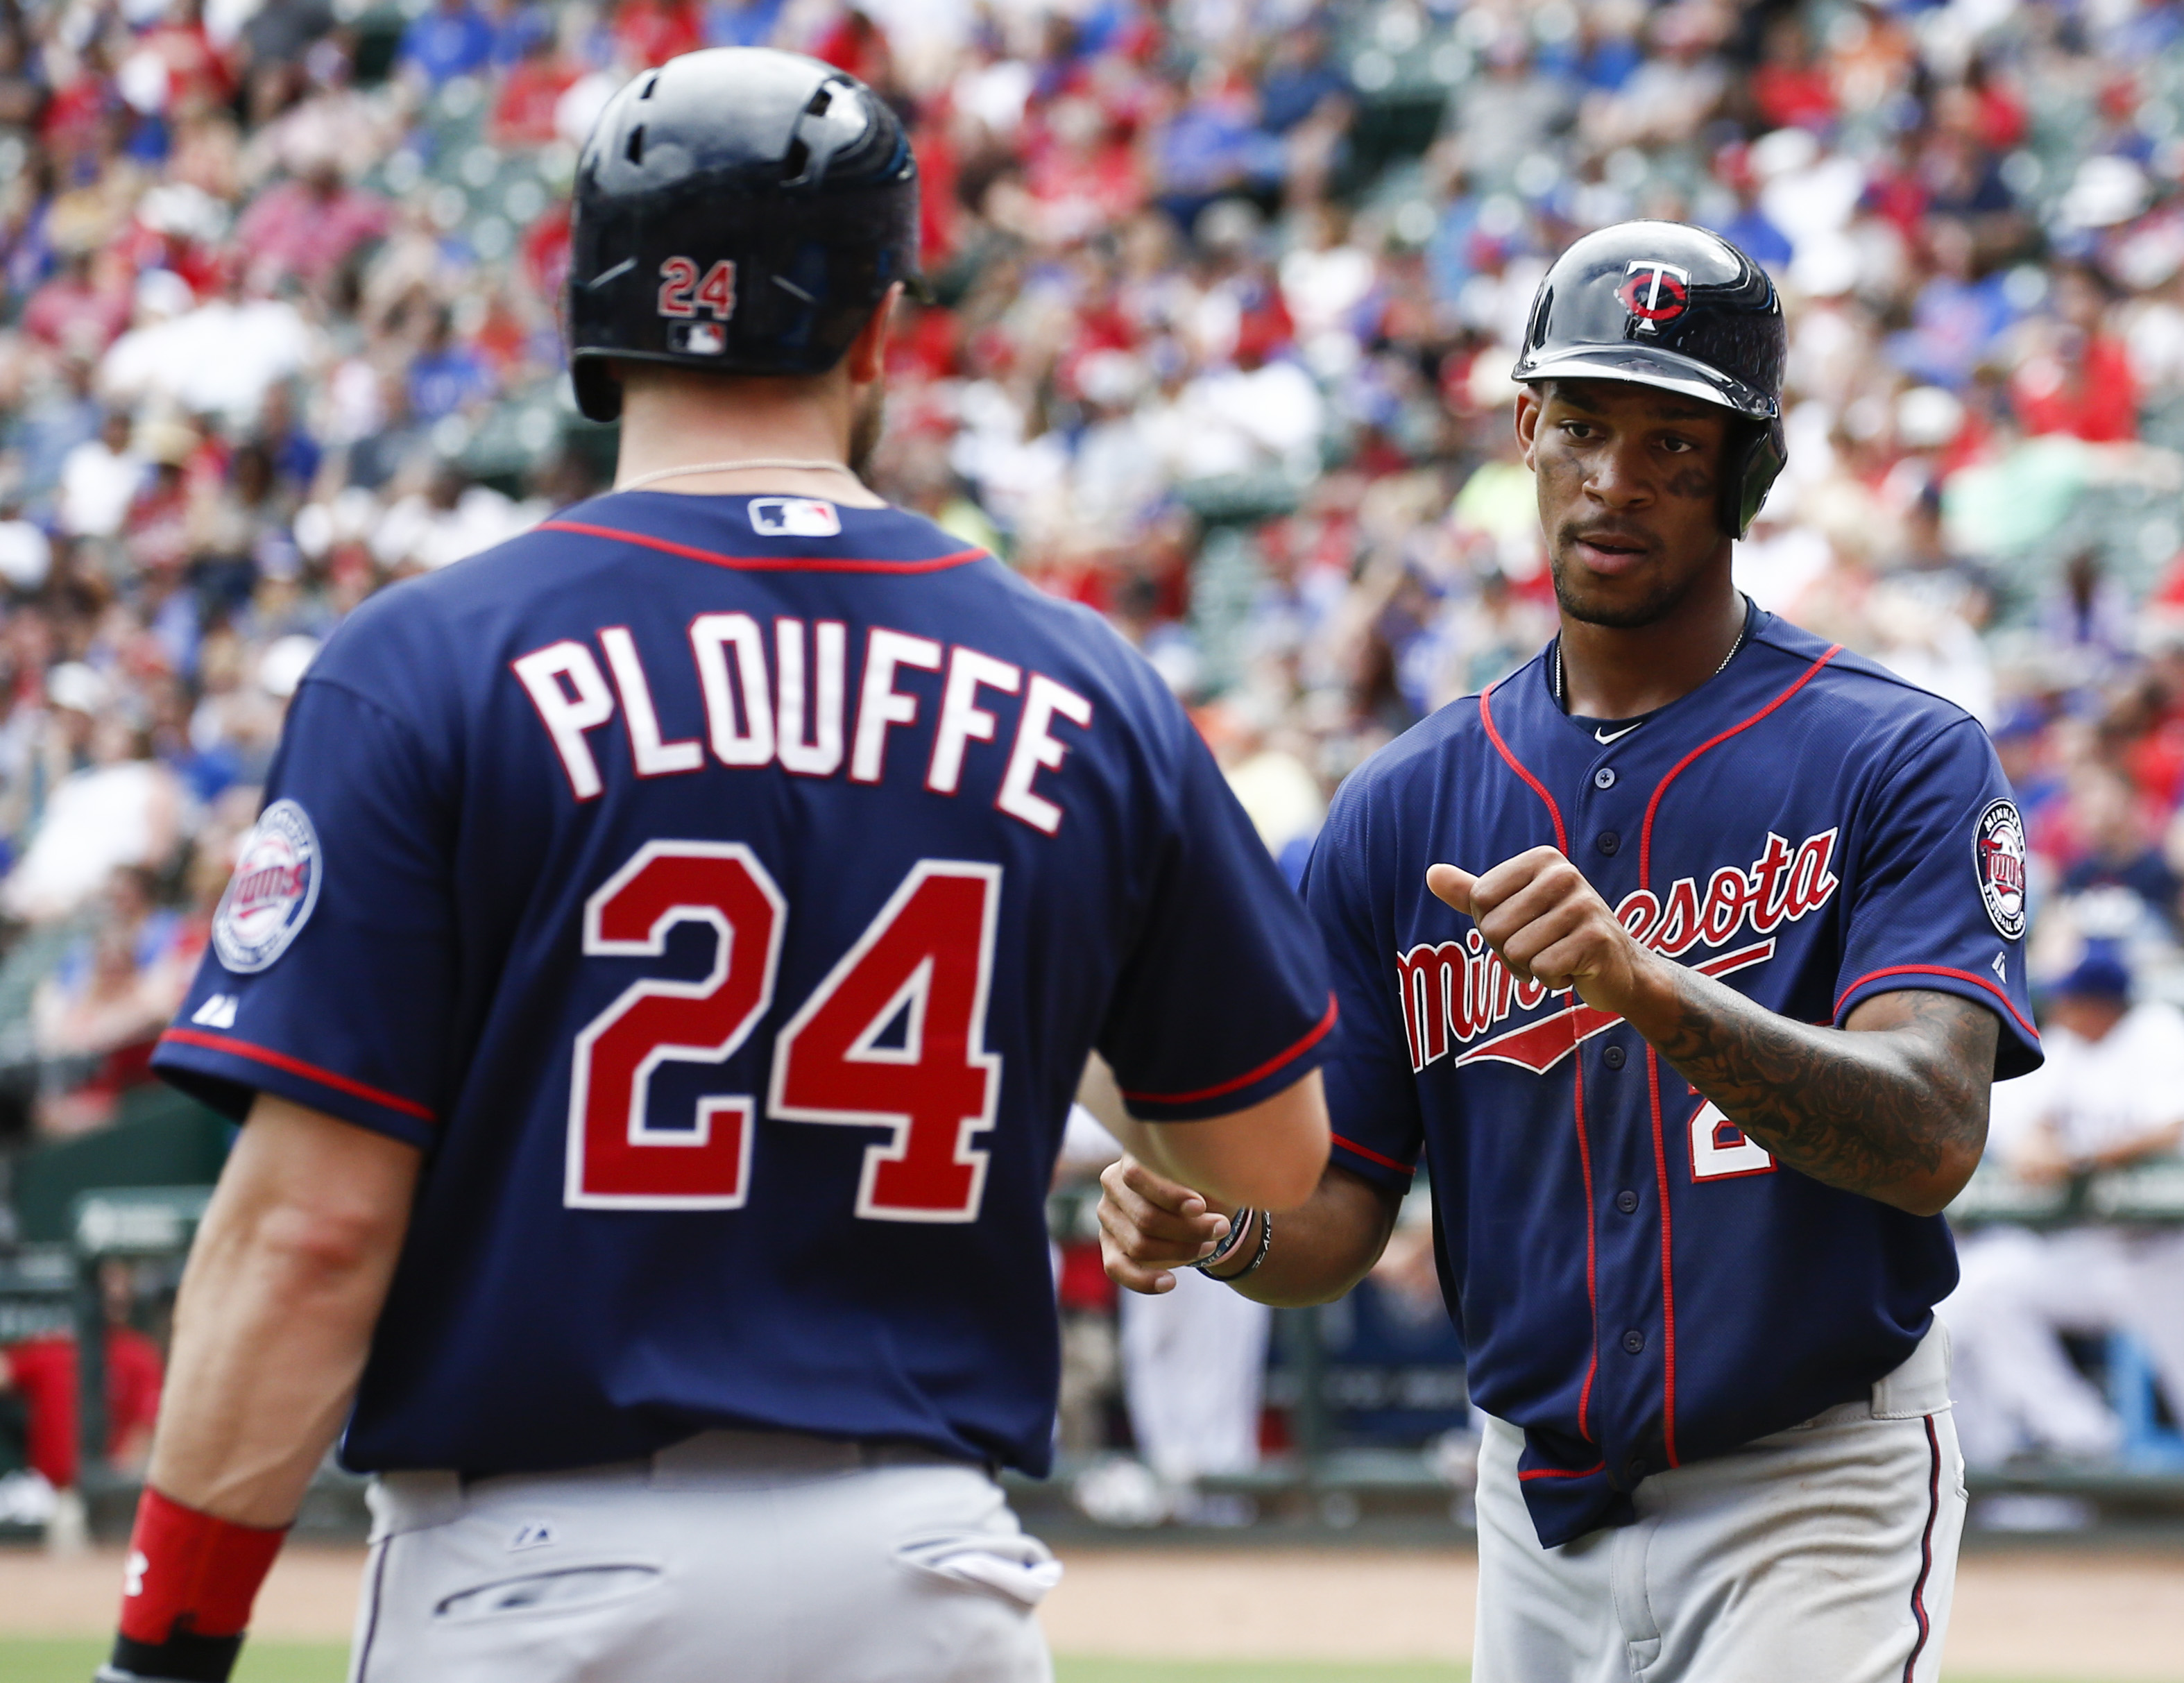 Minnesota Twins' Byron Buxton, right, is congratulated by Trevor Plouffe (24) after scoring the go-ahead run on a double by Eddie Rosario against the Texas Rangers during the ninth inning of a baseball game, Sunday, June 14, 2015, in Arlington, Texas. The